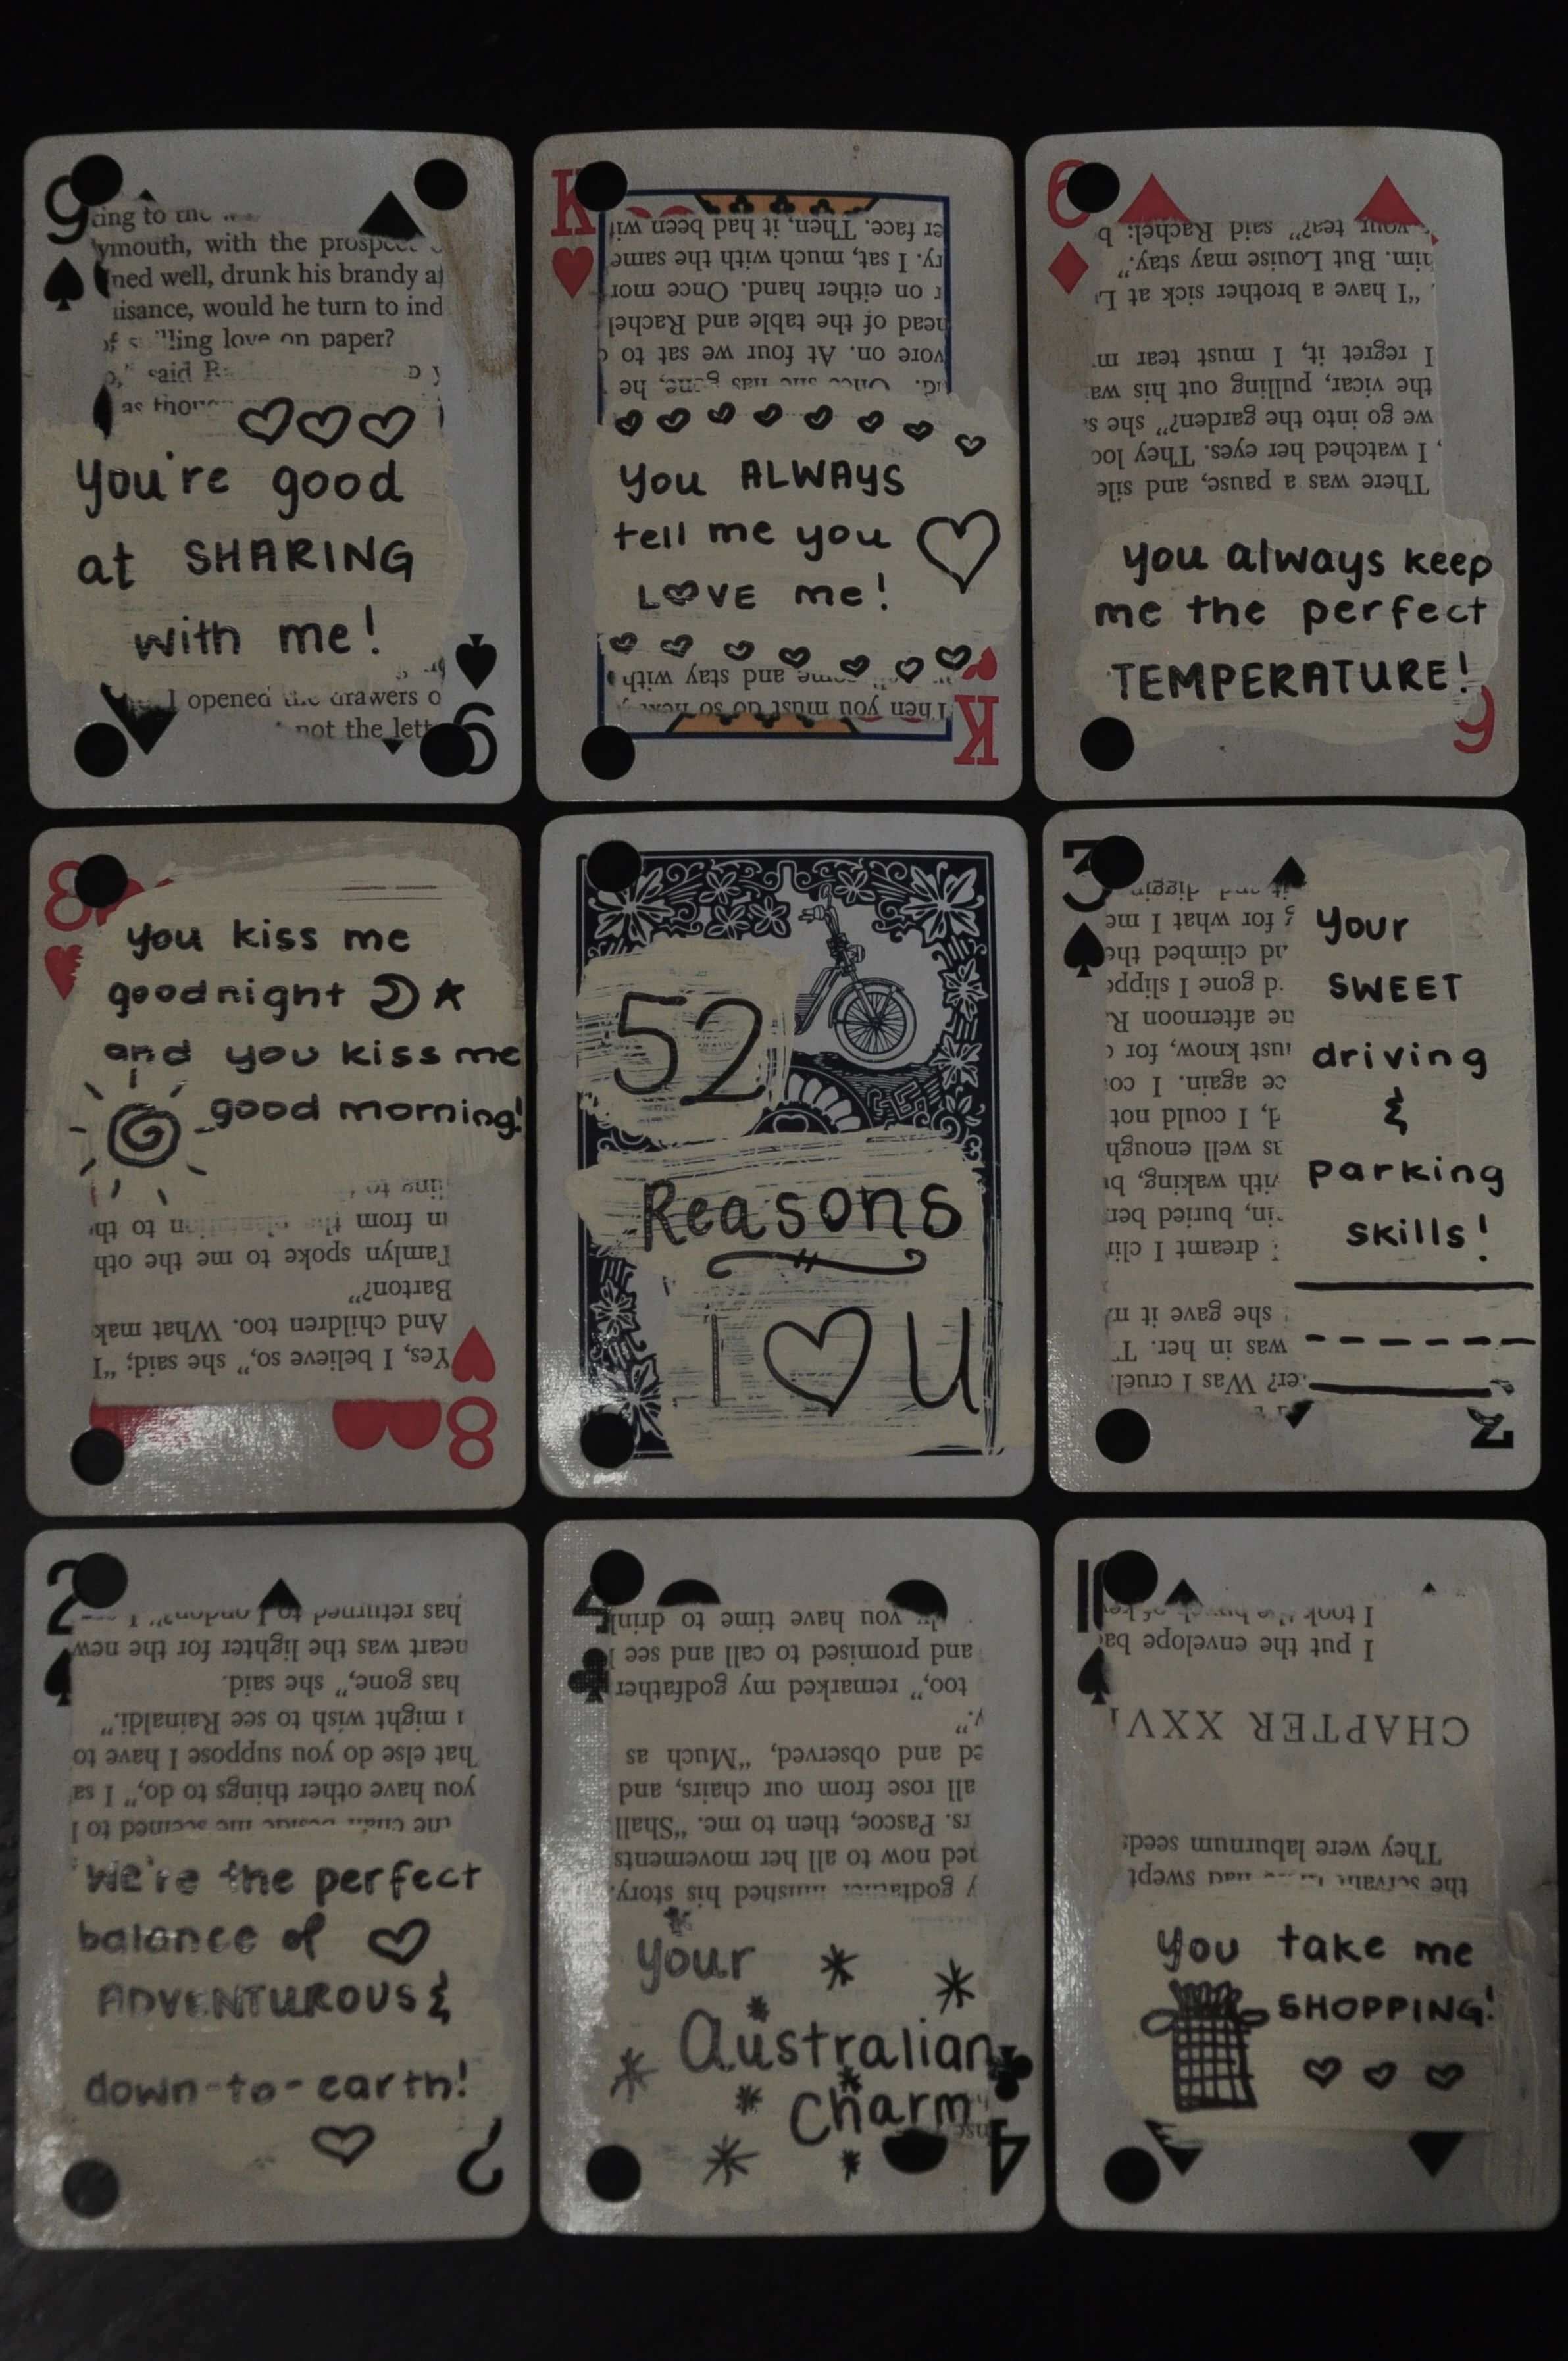 Pinjoanna Keysa On Free Tamplate   Reasons I Love You For 52 Reasons Why I Love You Cards Templates Free